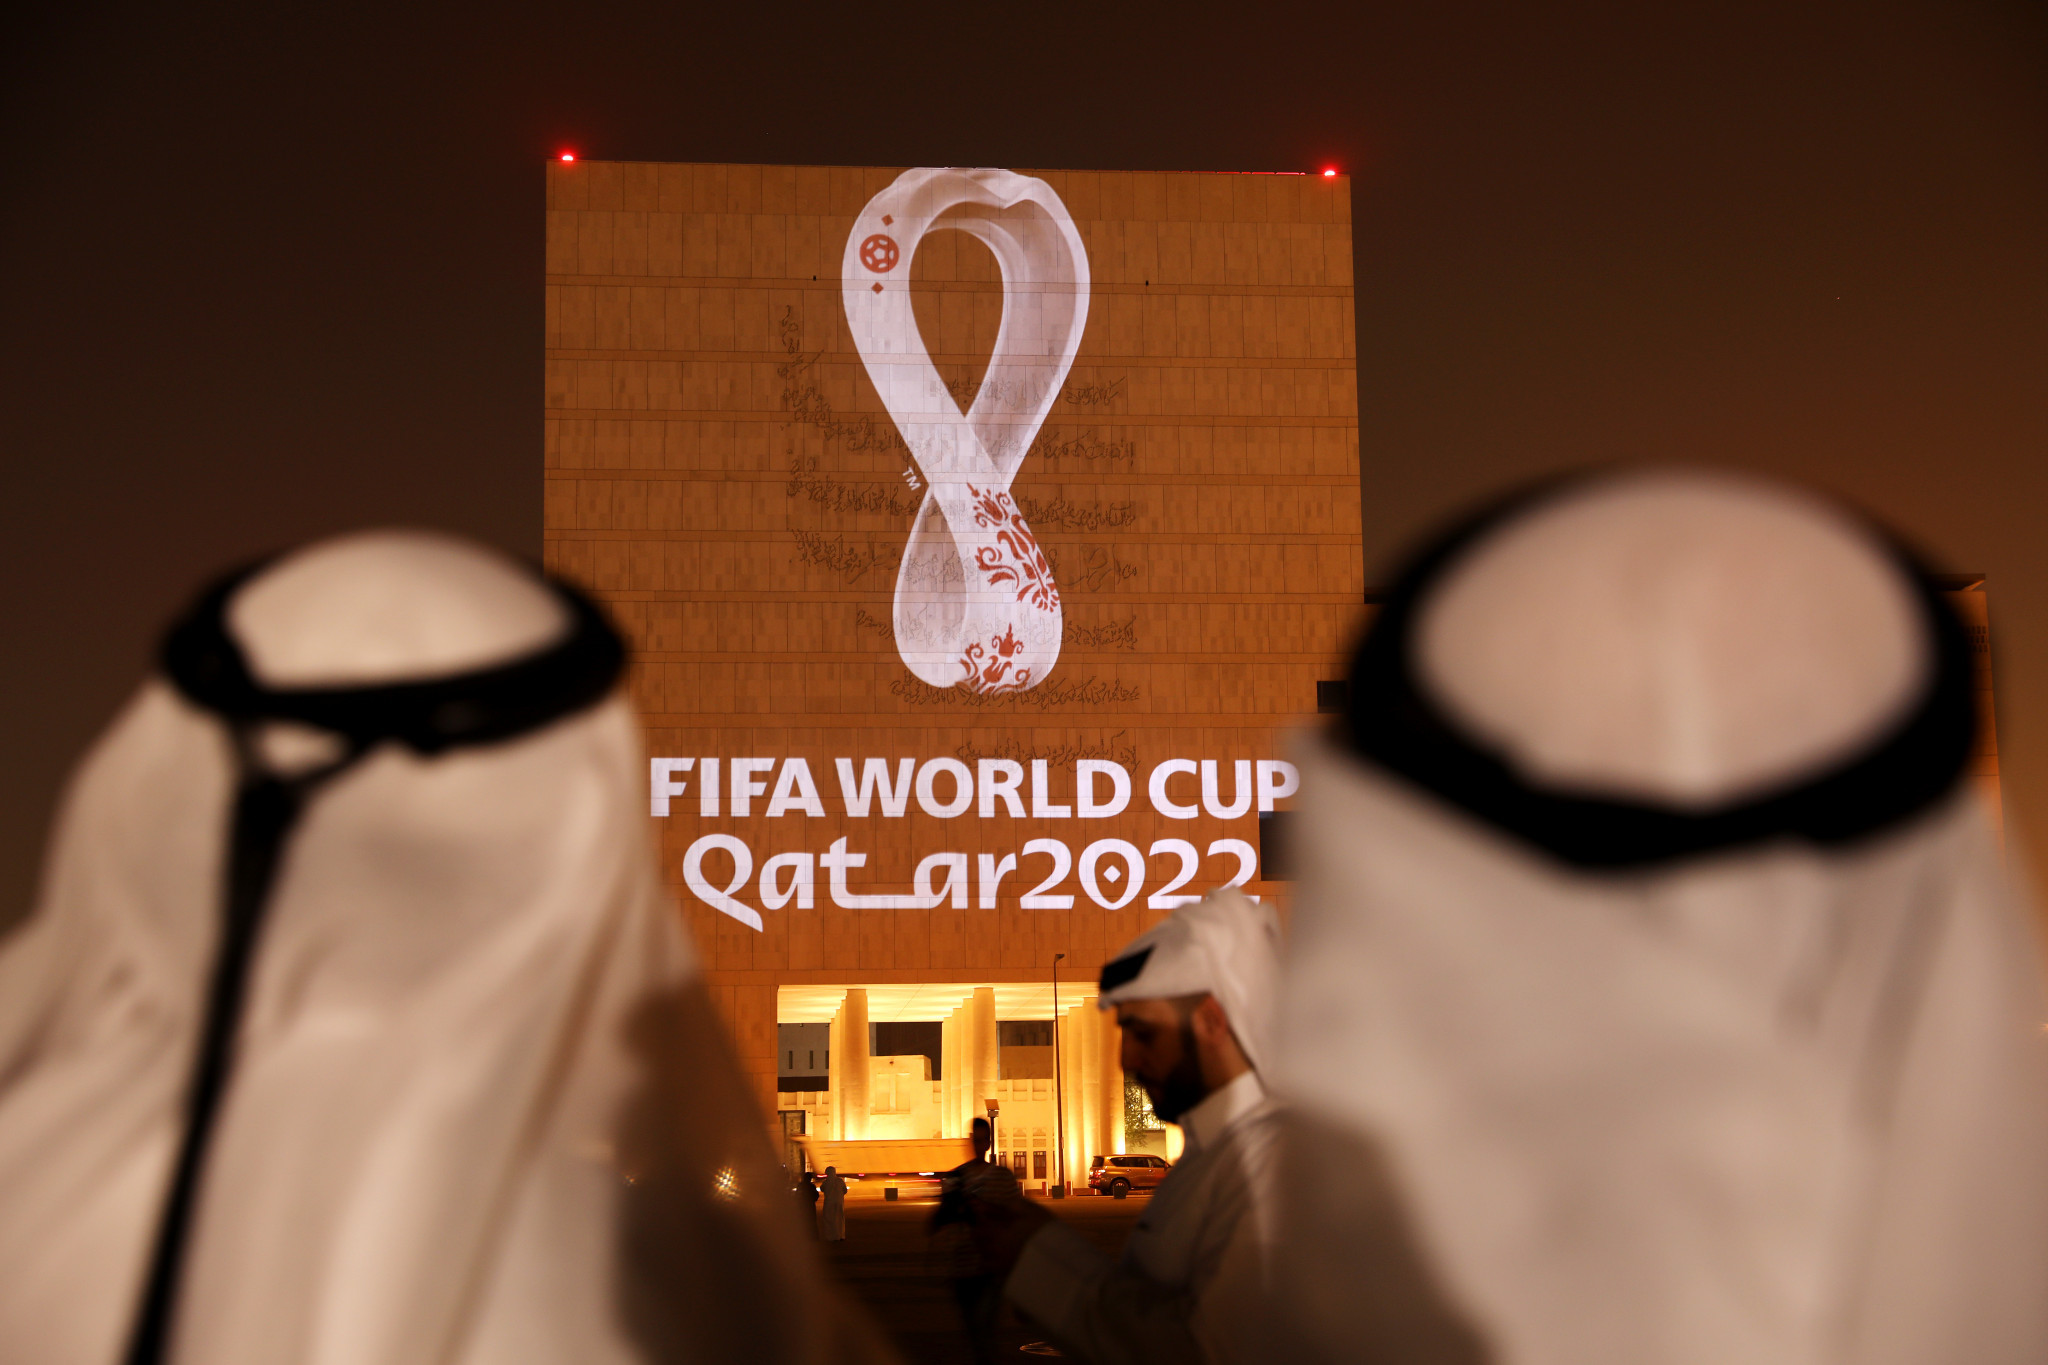 The Middle East has never before hosted the FIFA World Cup ©Getty Images